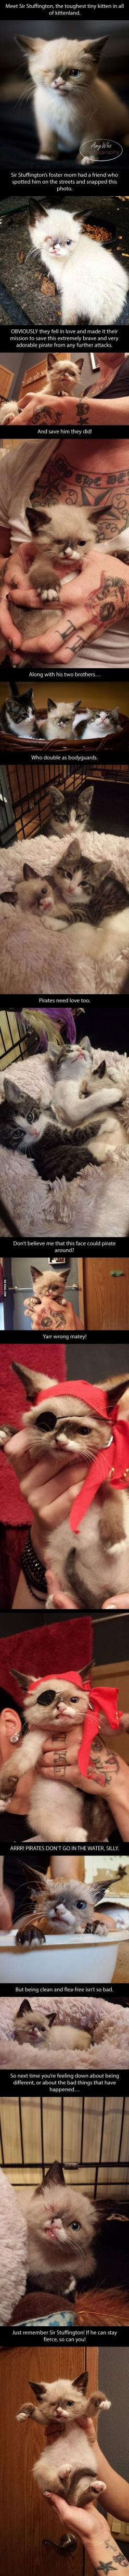 Adorable. Read this:) it's great if you're having a bad day! this just made my day even better <3: Cutest Pirate, Sweet, My Heart, Pirate Kitten, Animal